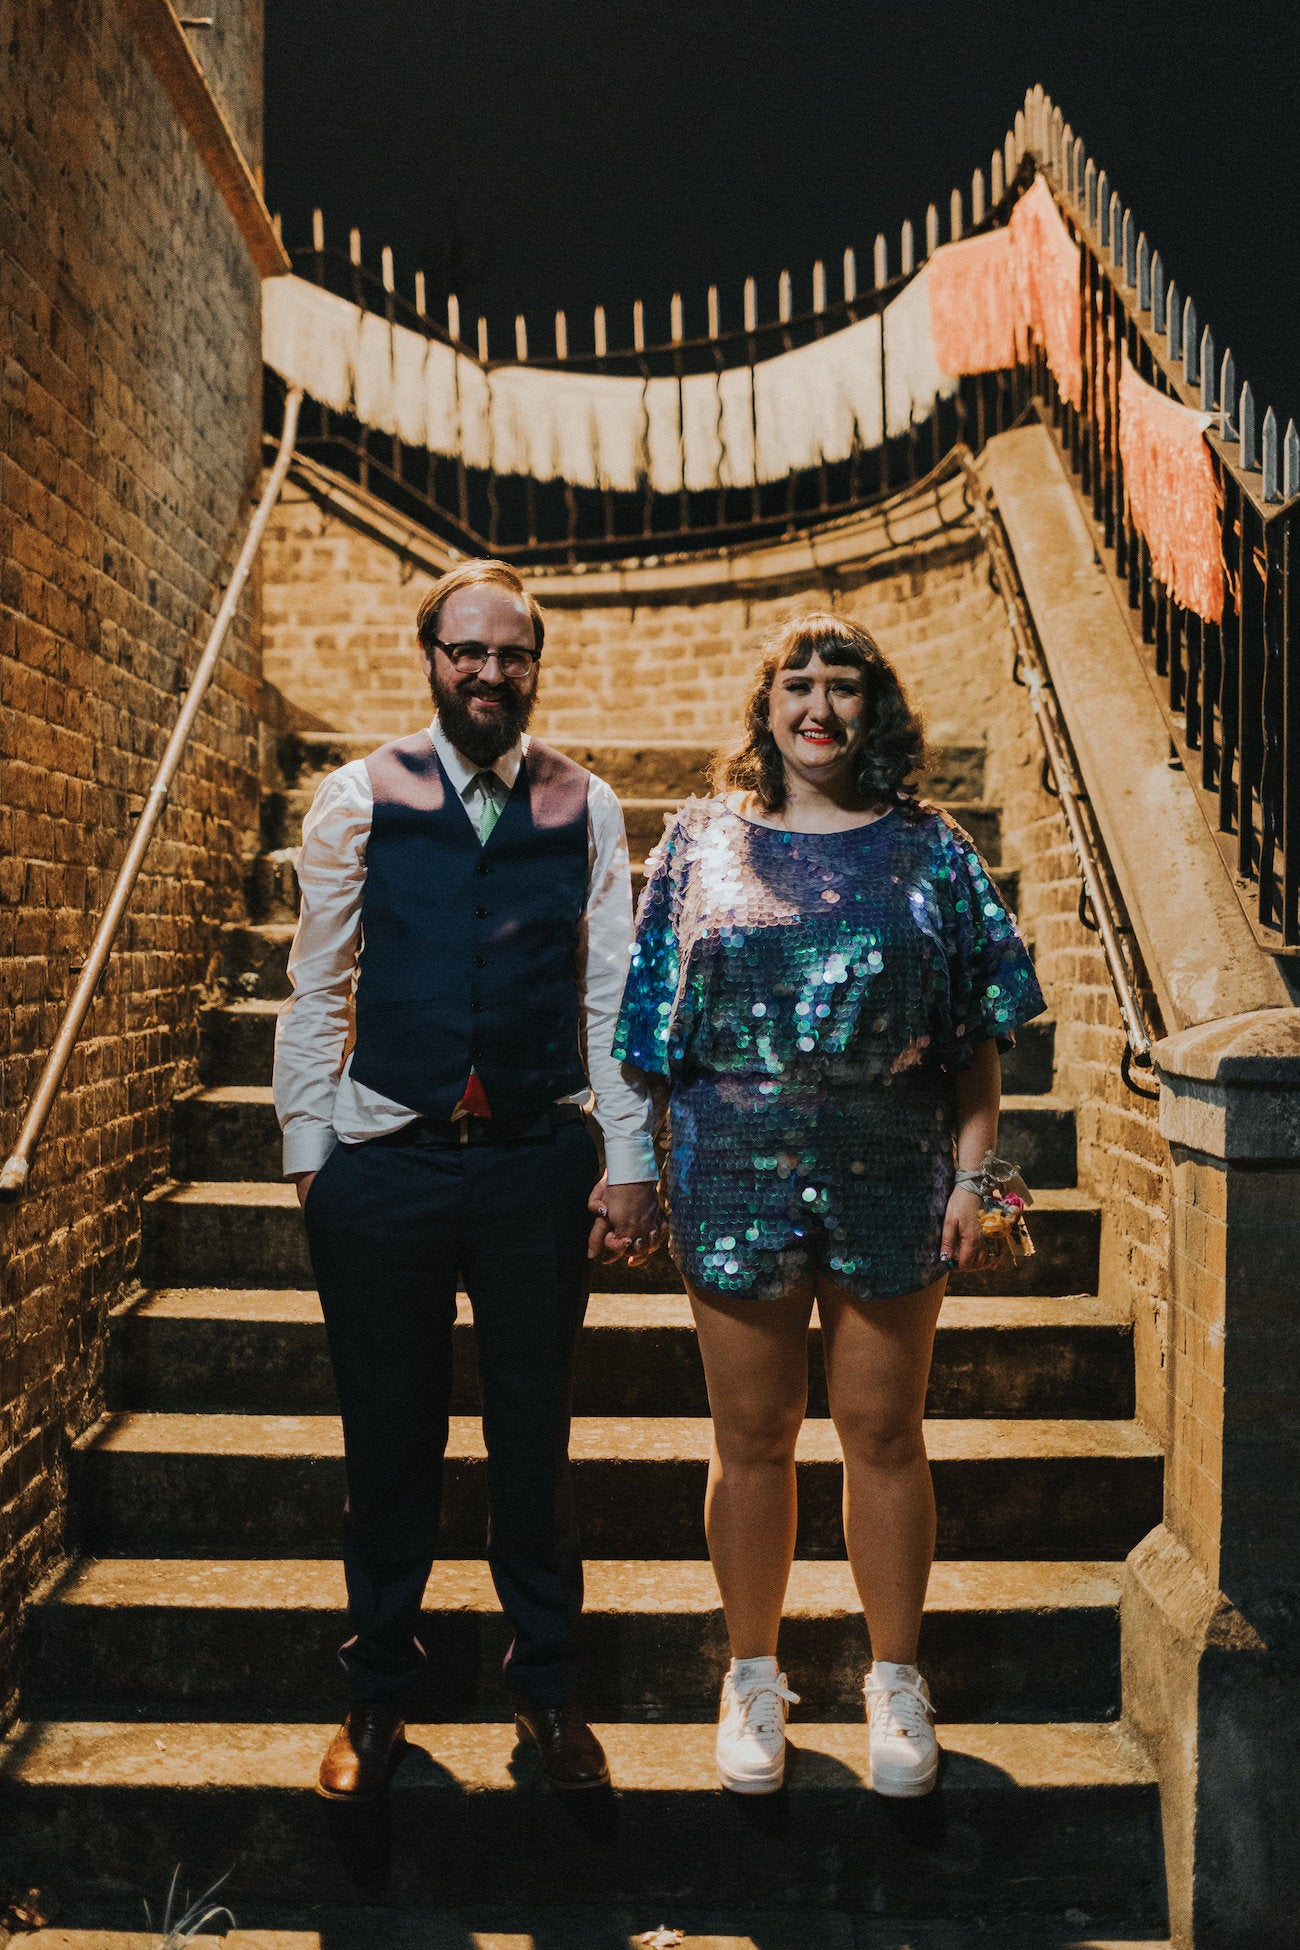 A newly wed couple pose for a photograph at night by some stone stairs and the woman wears a blue sequin romper.